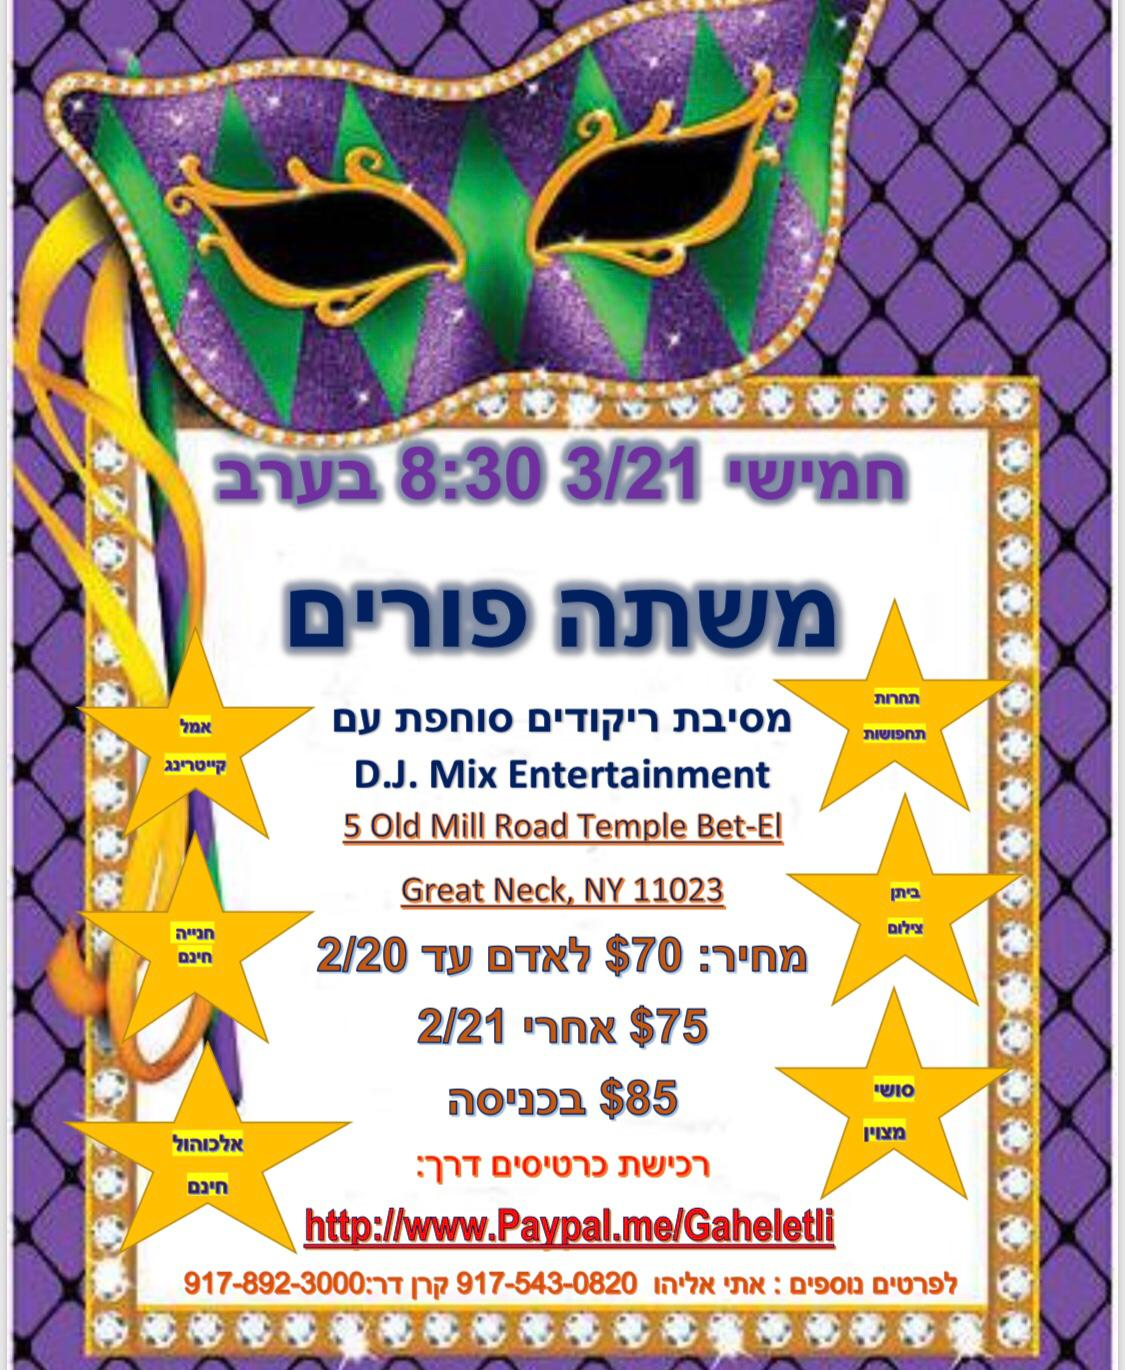 purim party gahele